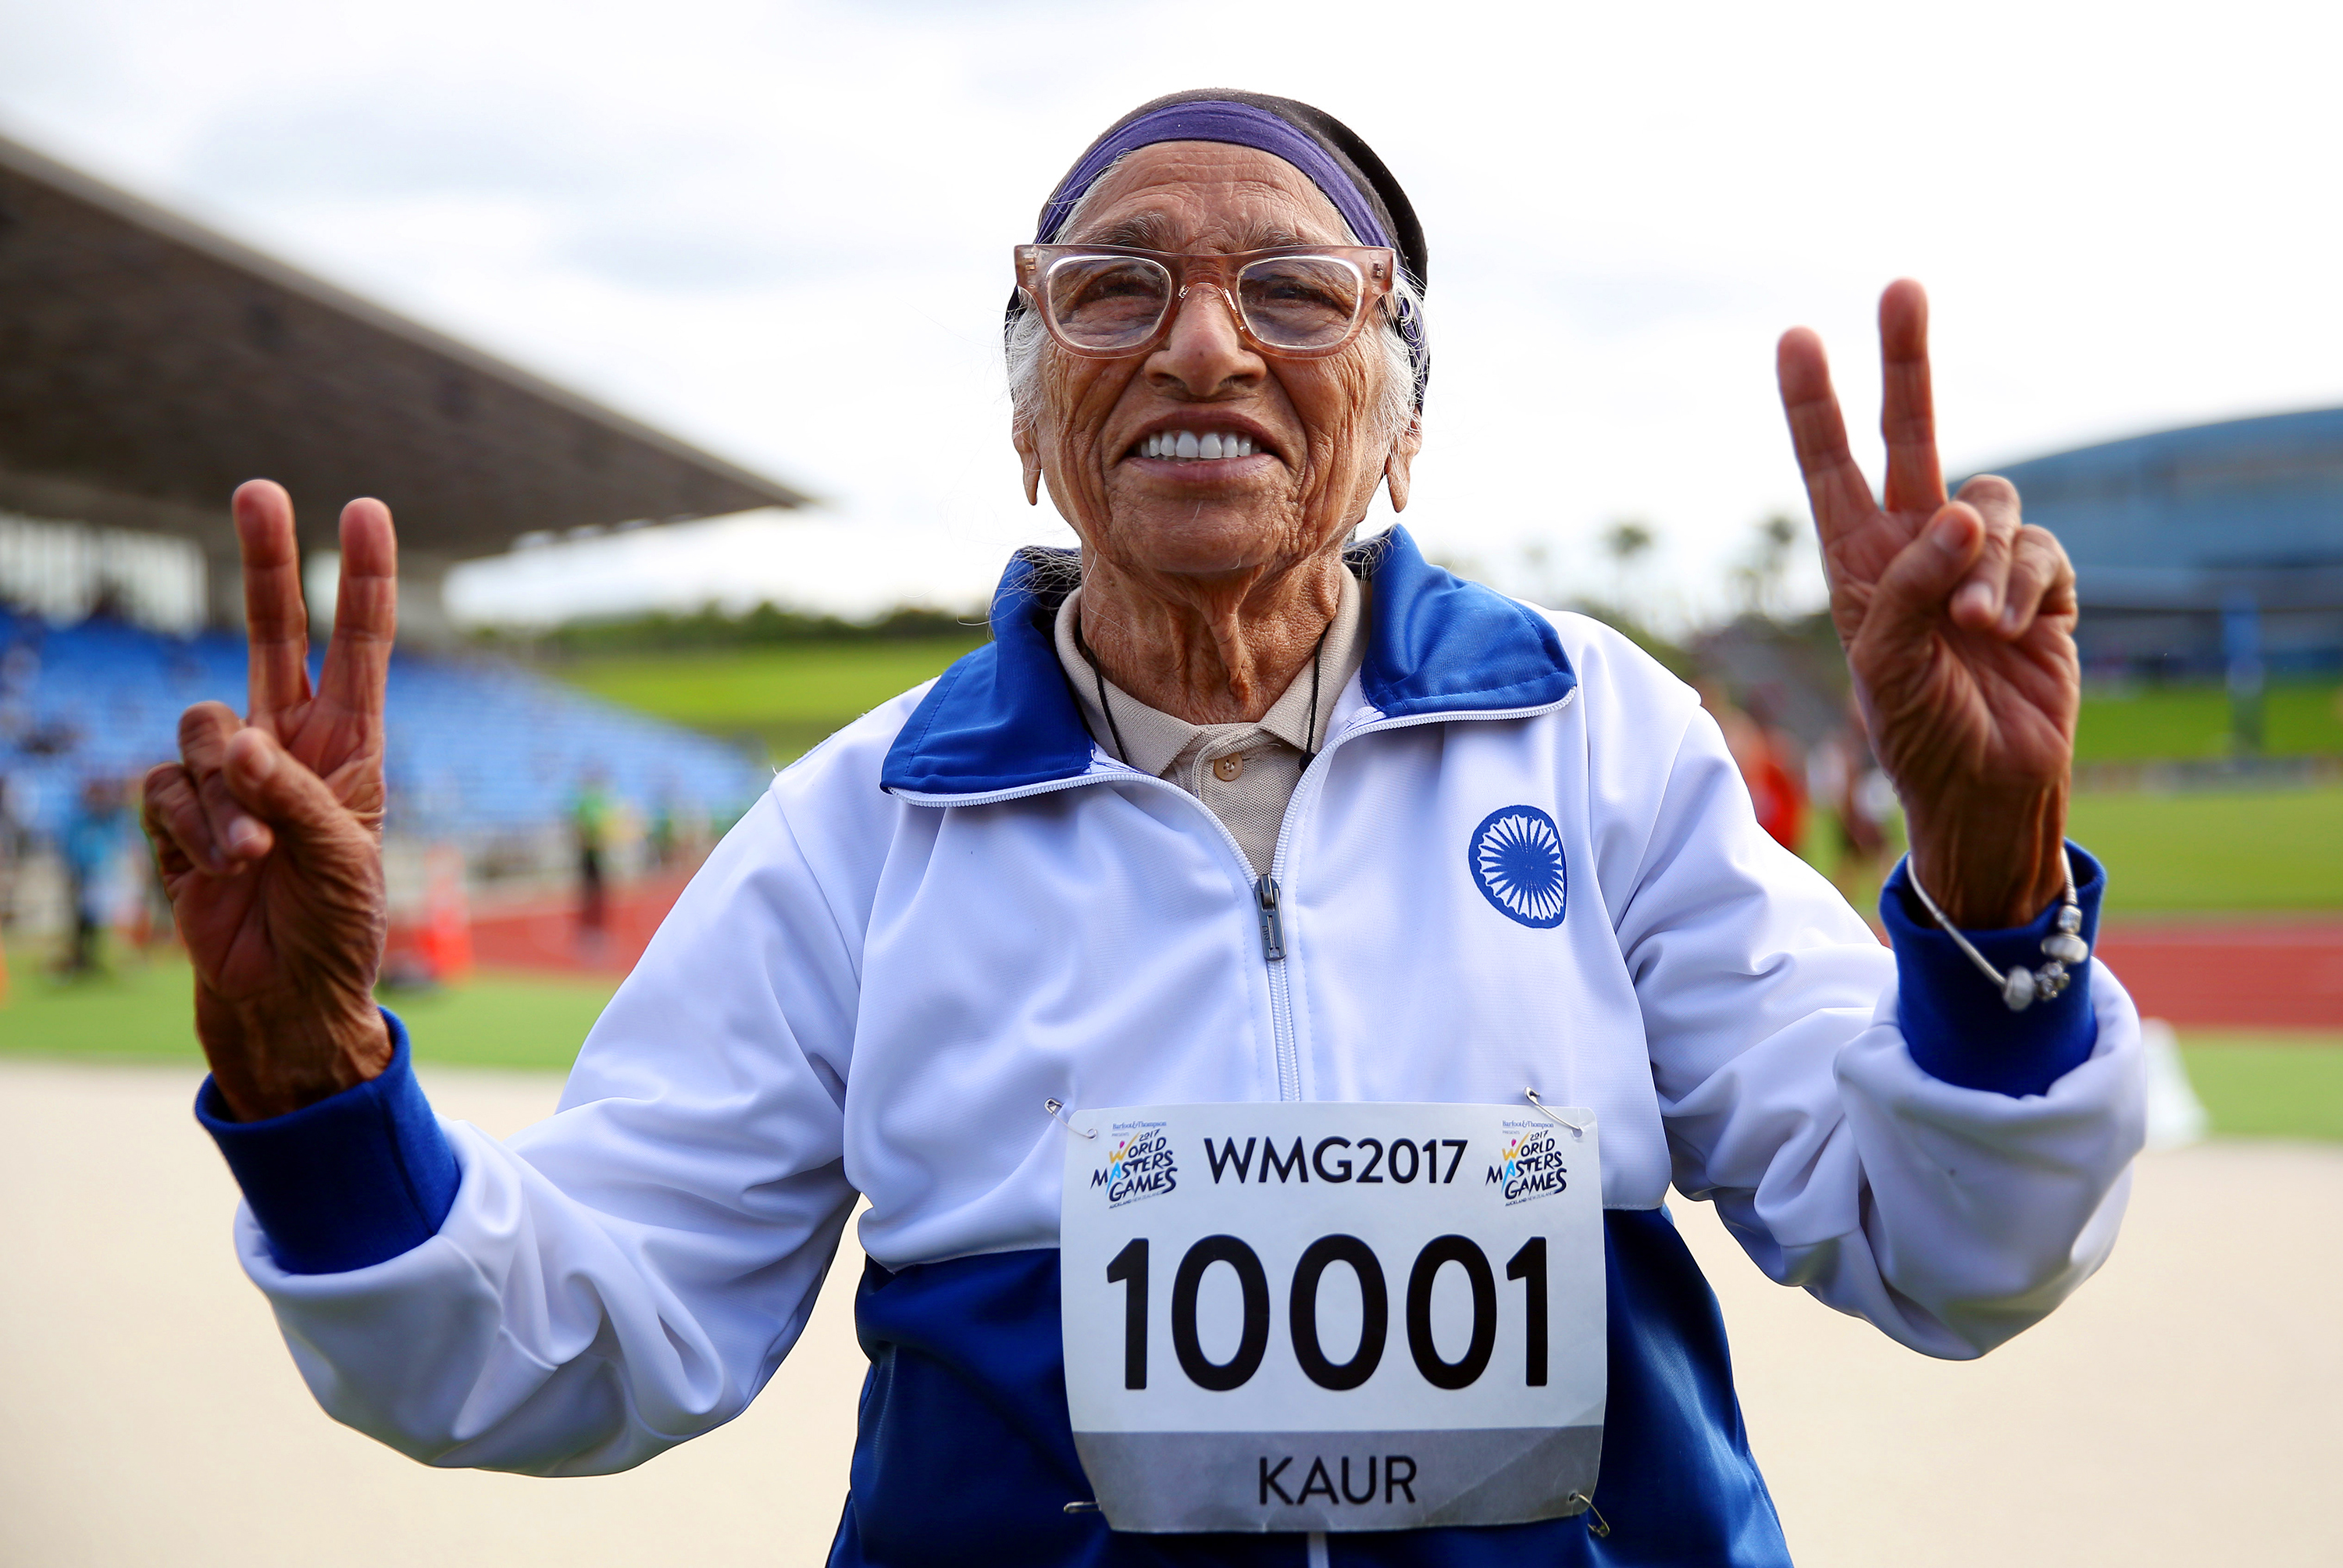 At Age 101, She's A World Champ Runner